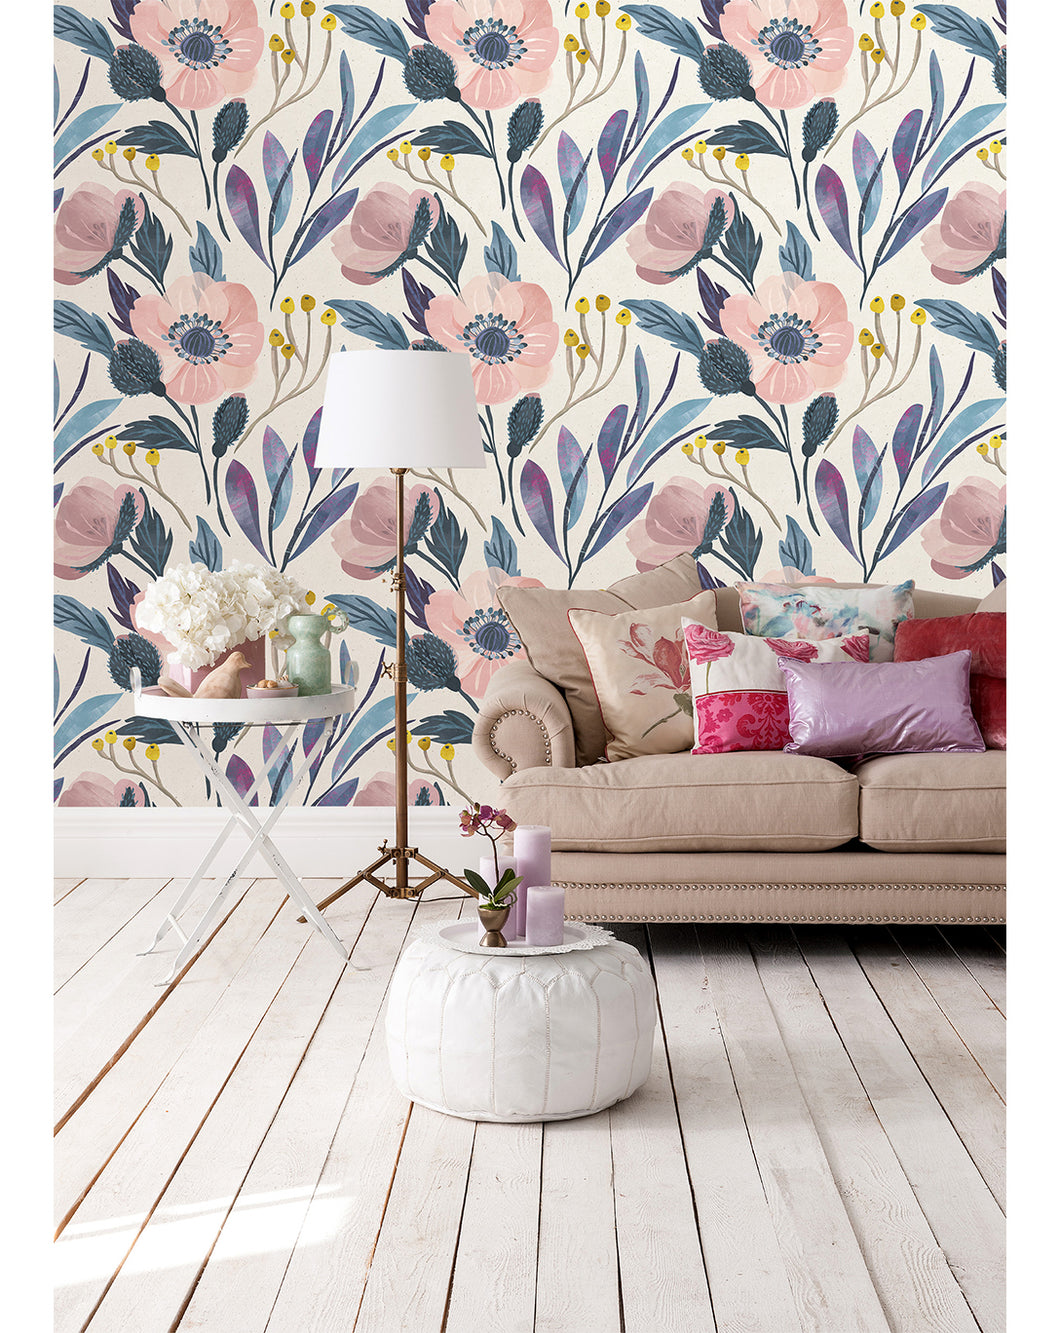 Floral Watercolor Poppy Removable Wallpaper Cc005 Costacover